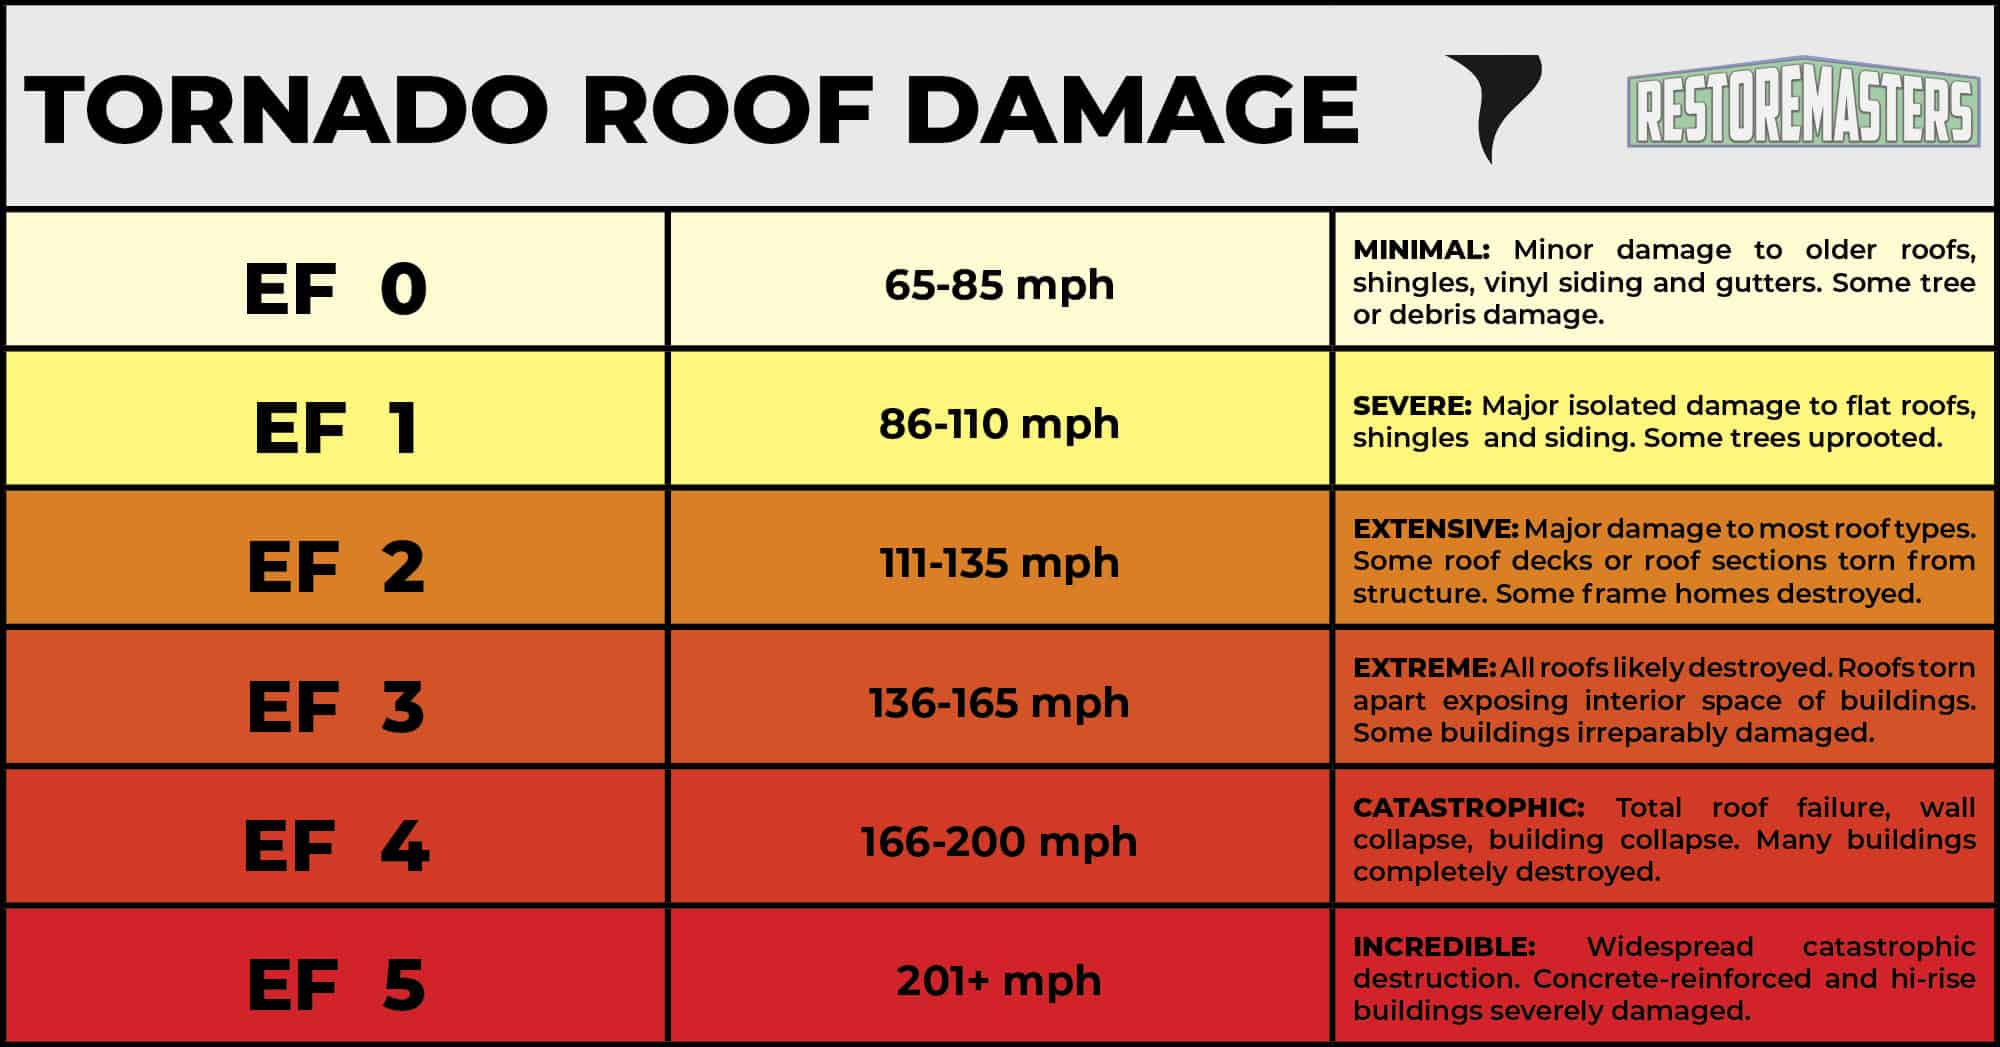 Roof Damage by Tornado Category